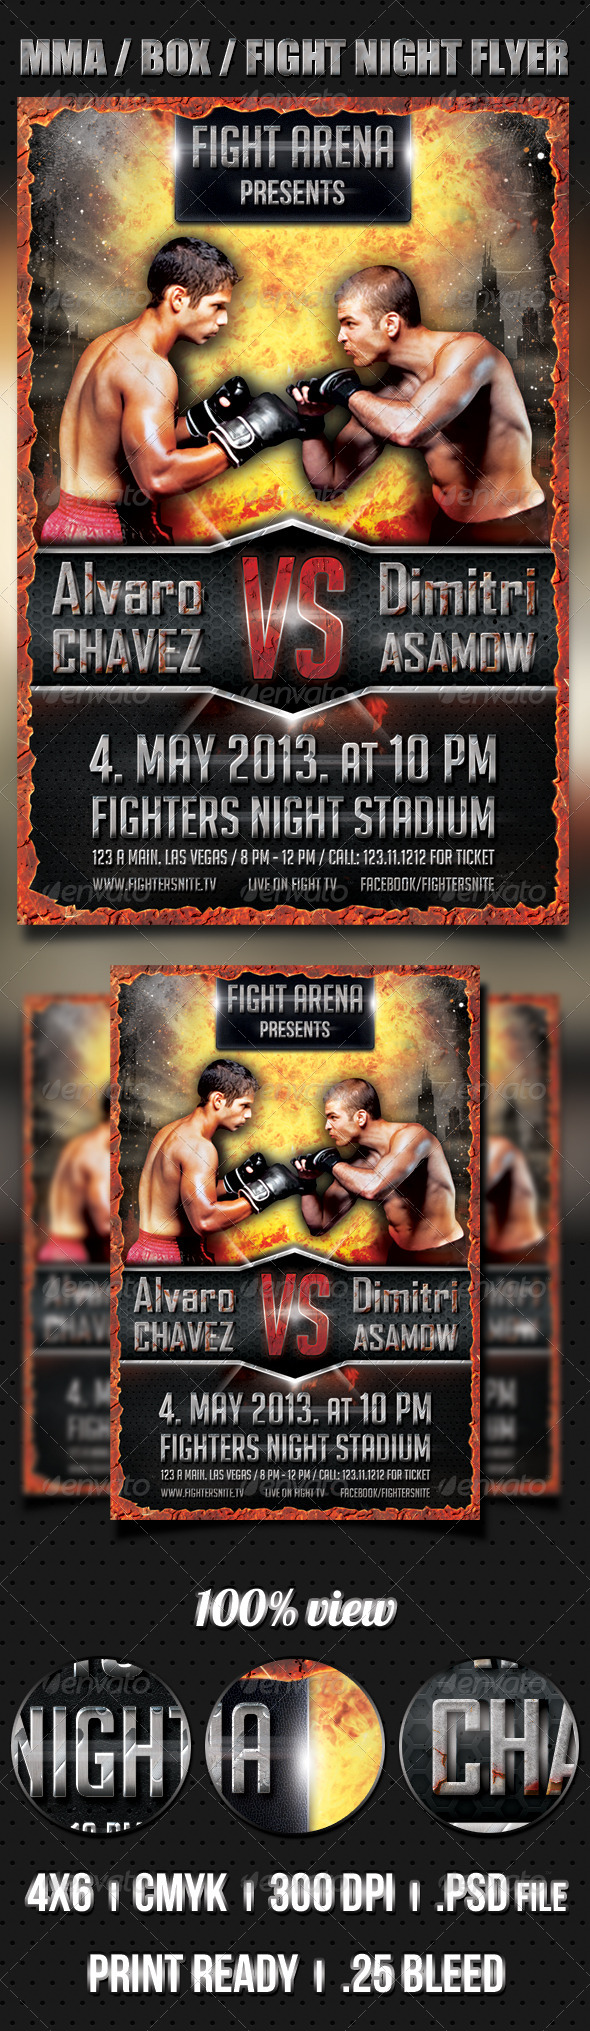 MMA / BOX / Fight Night flyer - Sports Events